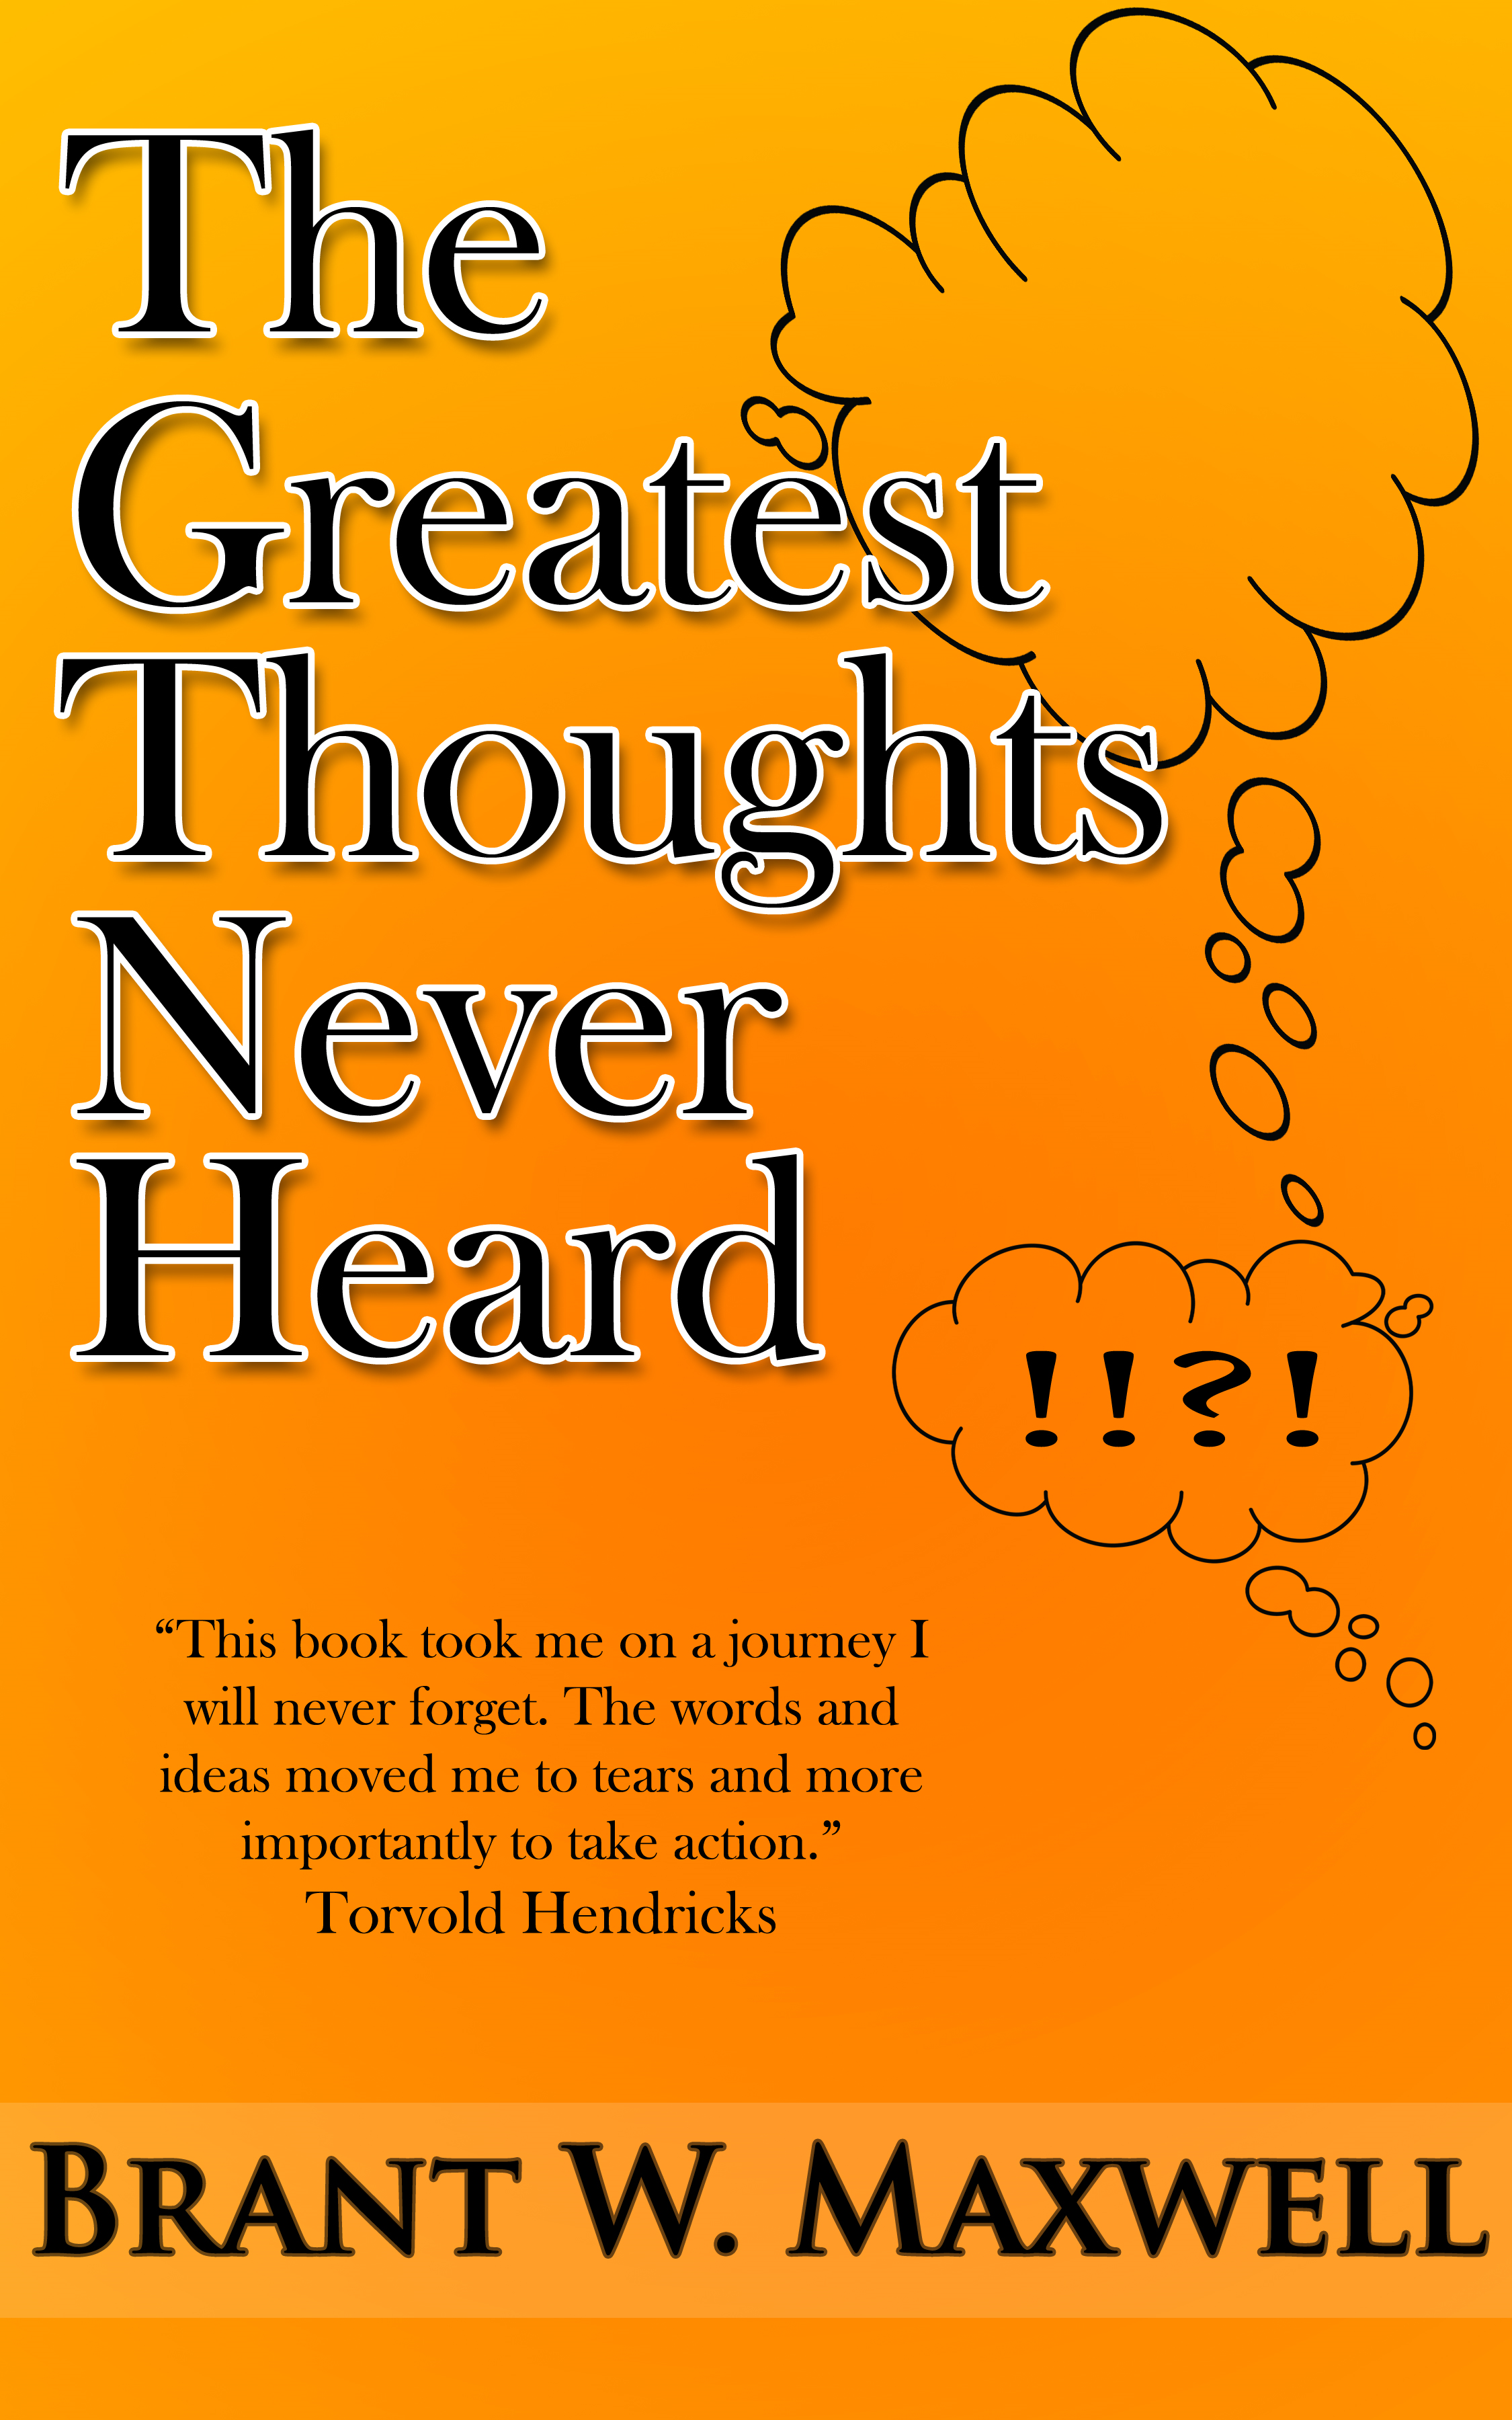 The Greatest Thoughts Never Heard